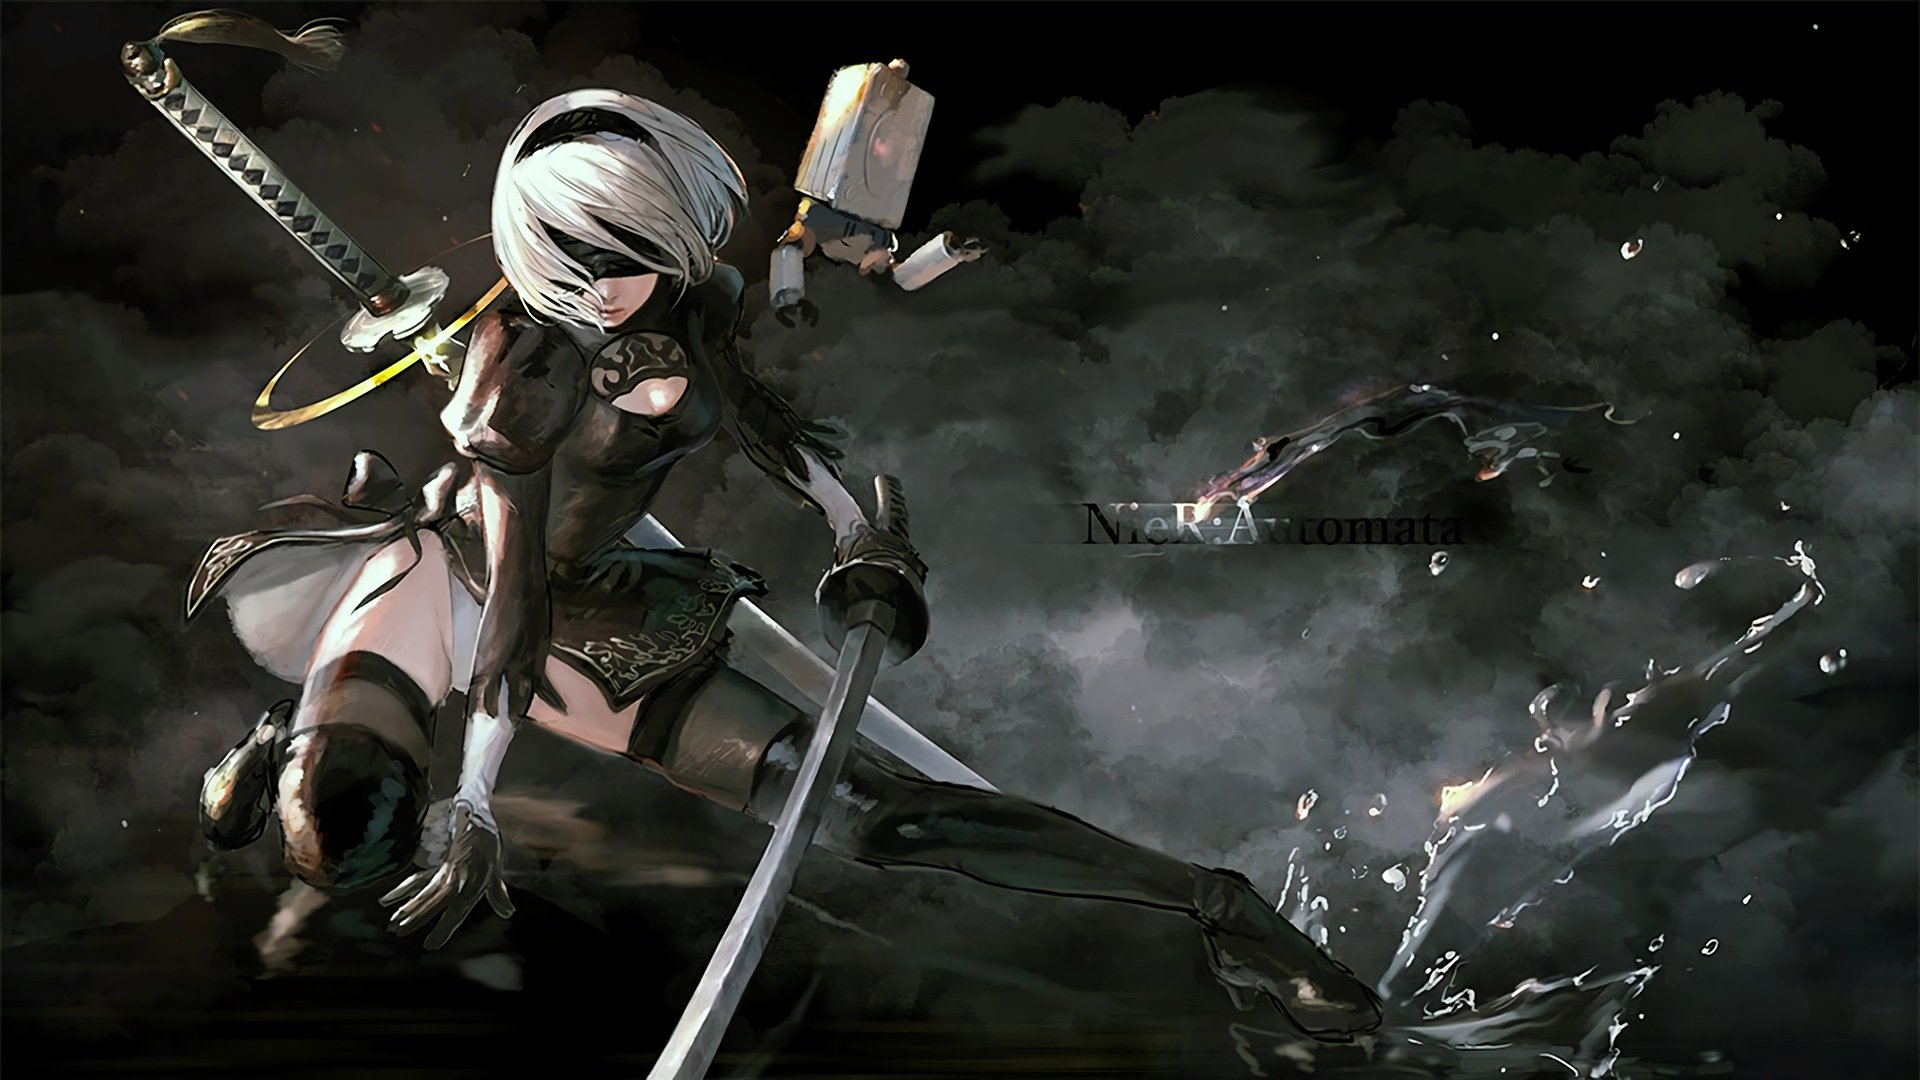 Free Download Nier Automata Game 279 Wallpapers 6 1920x1080 For